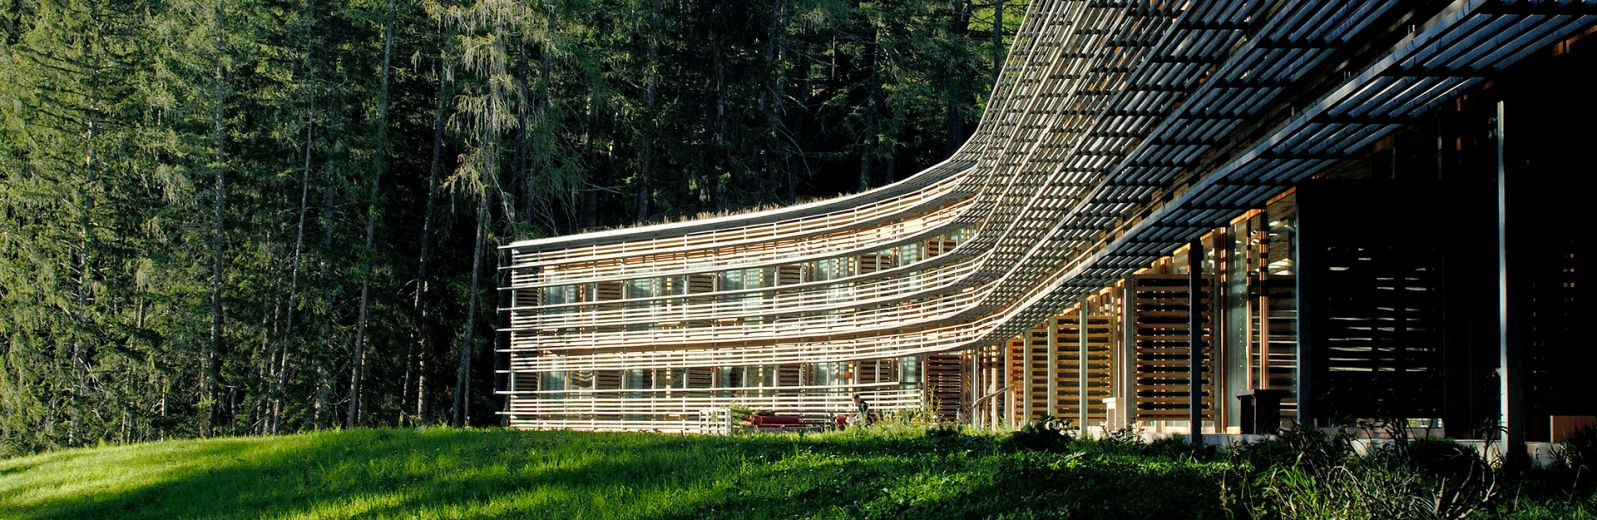 Purity of nature and design in South Tyrol-Vigilius Mountain Resort, a design hotel created by architect, Matteo Thun